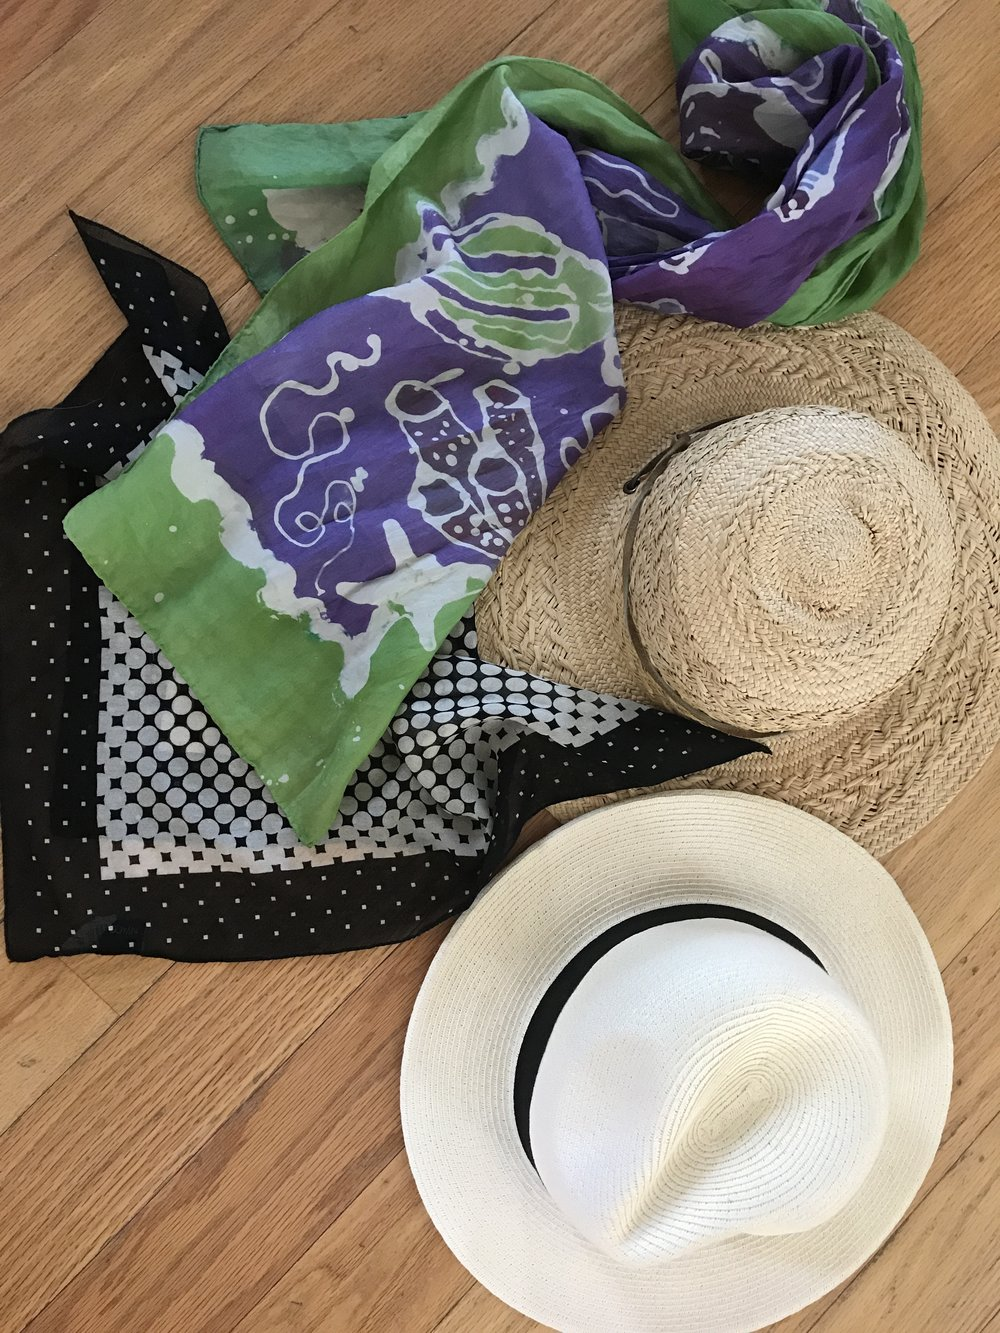 Long scarves, square scarves, big sun hats and lightweight headbands work well with existing summer headwear you can find anywhere at all price points. These cool options for summer are chic with your favorite sunglasses!